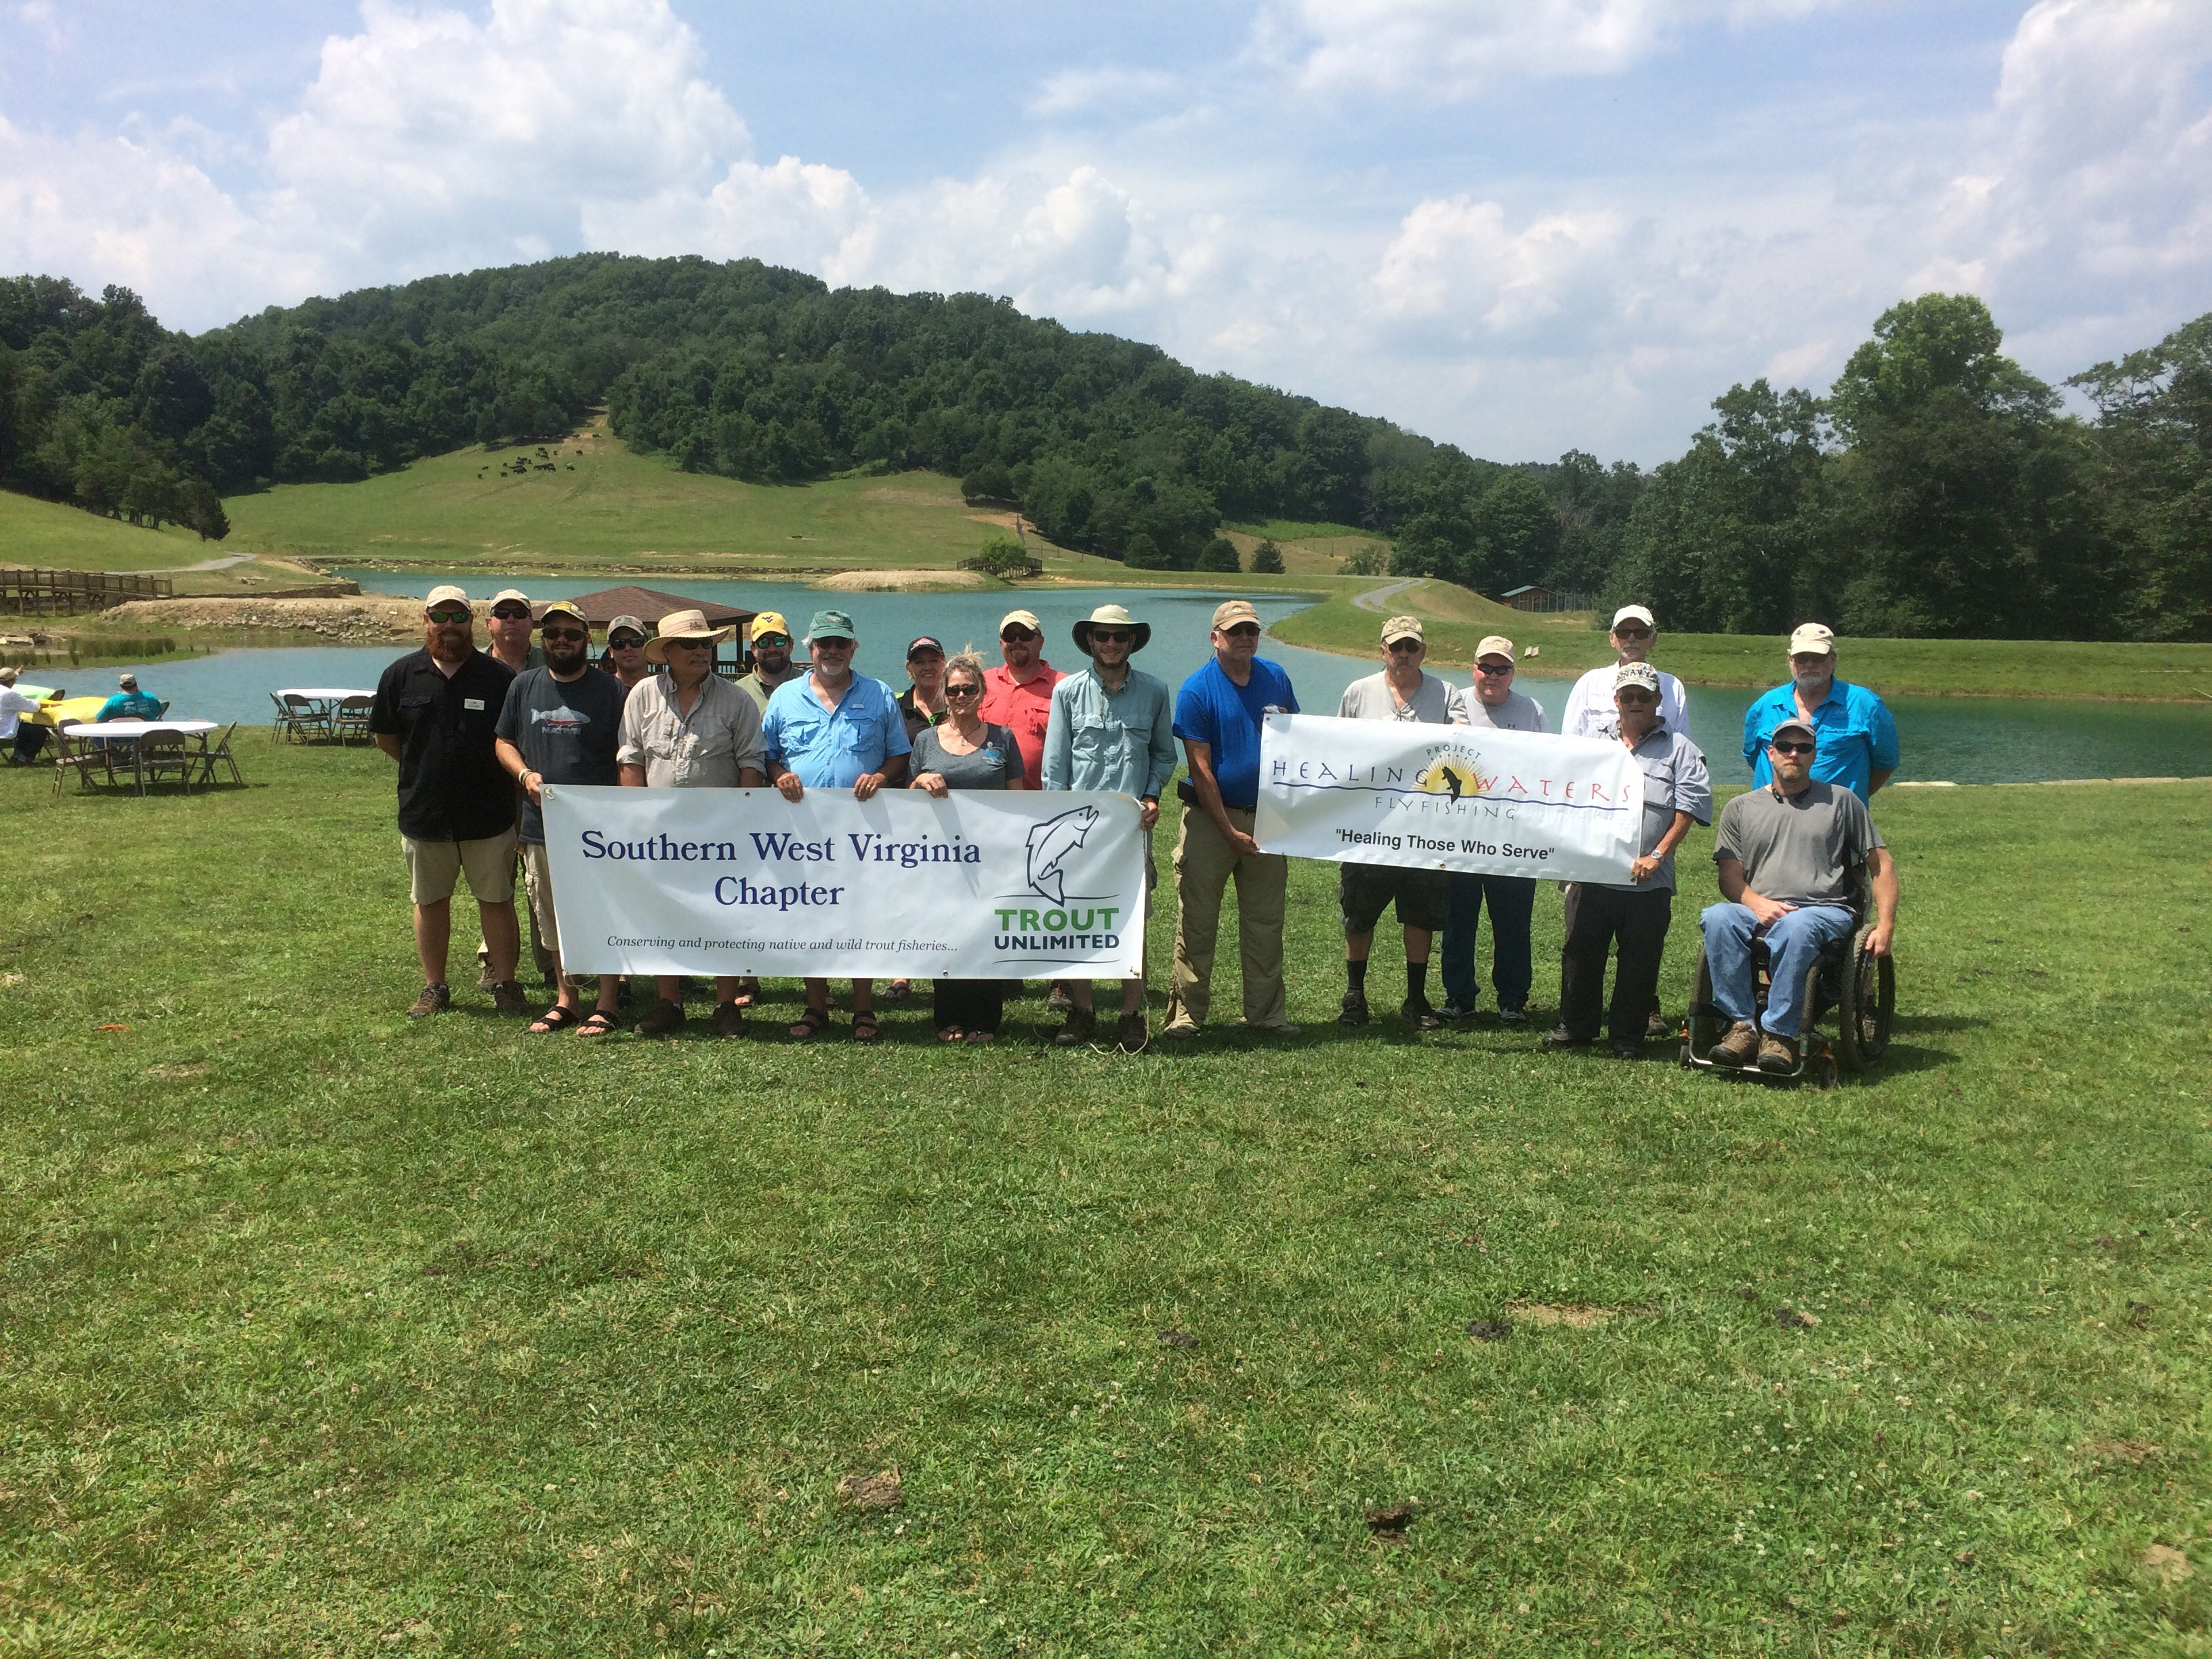 West virginia all about fly fishing mountain meadows for Fly fishing west virginia